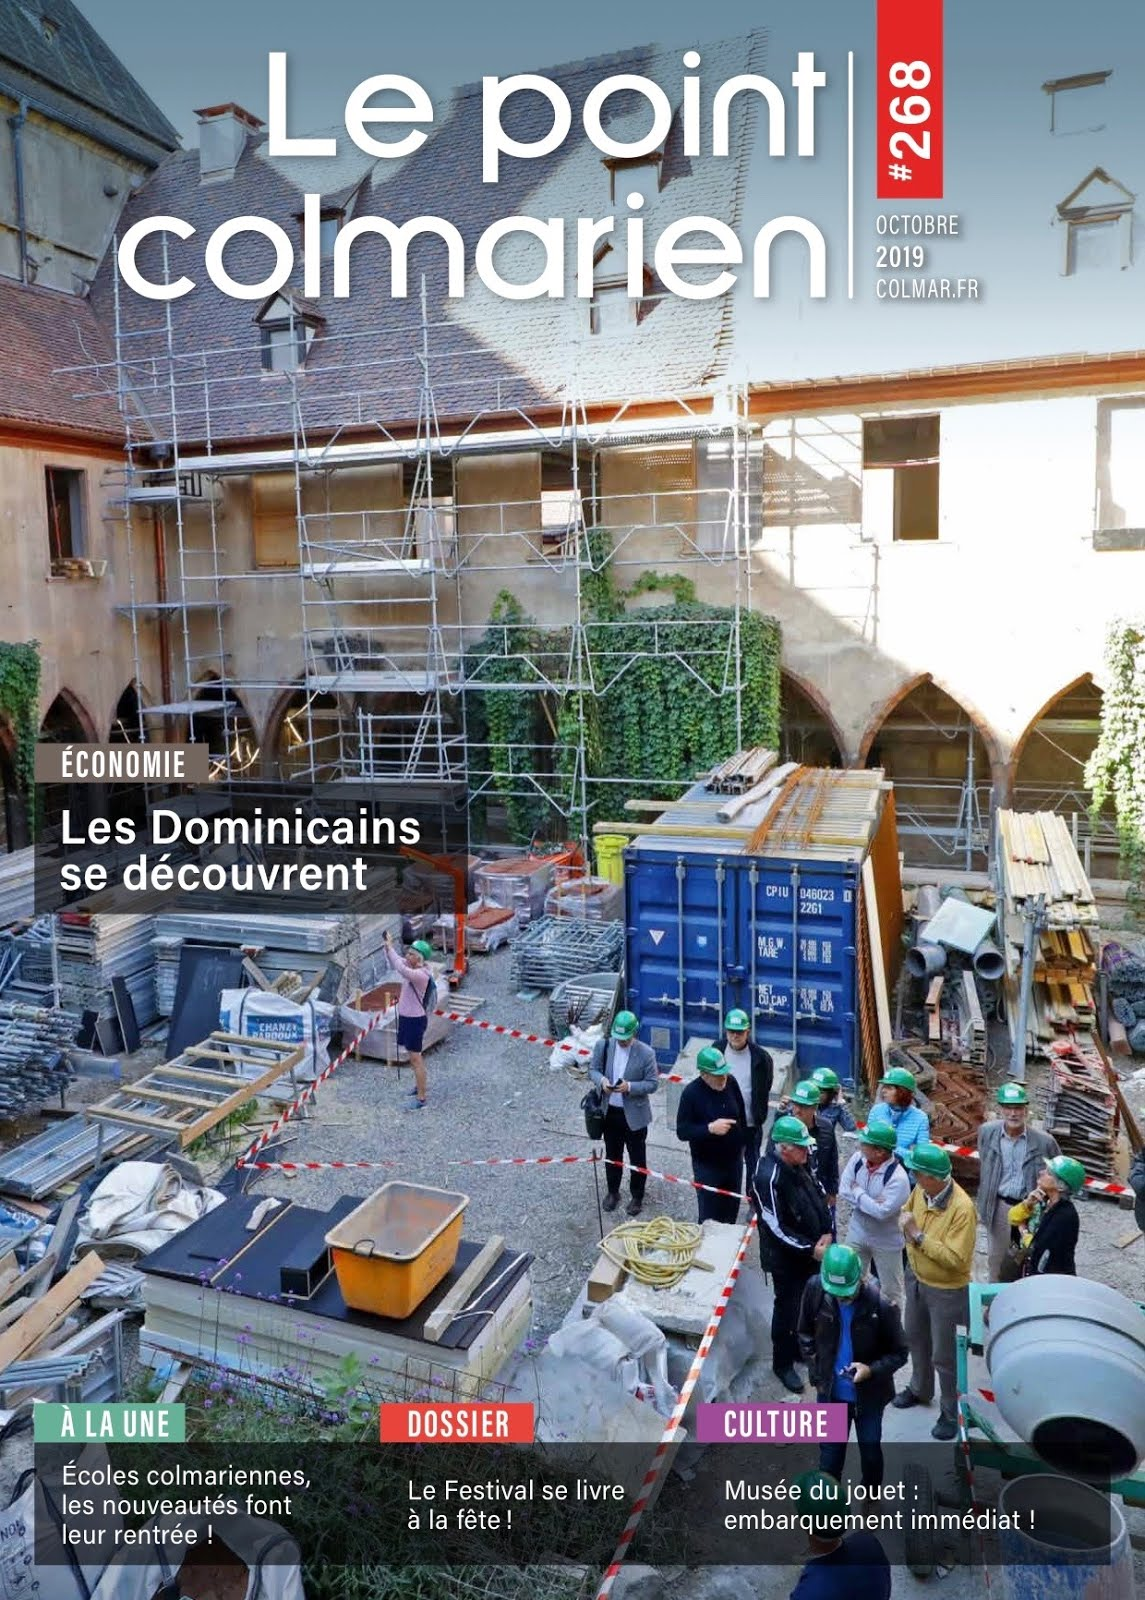 Le Point Colmarien  - Octobre 2019